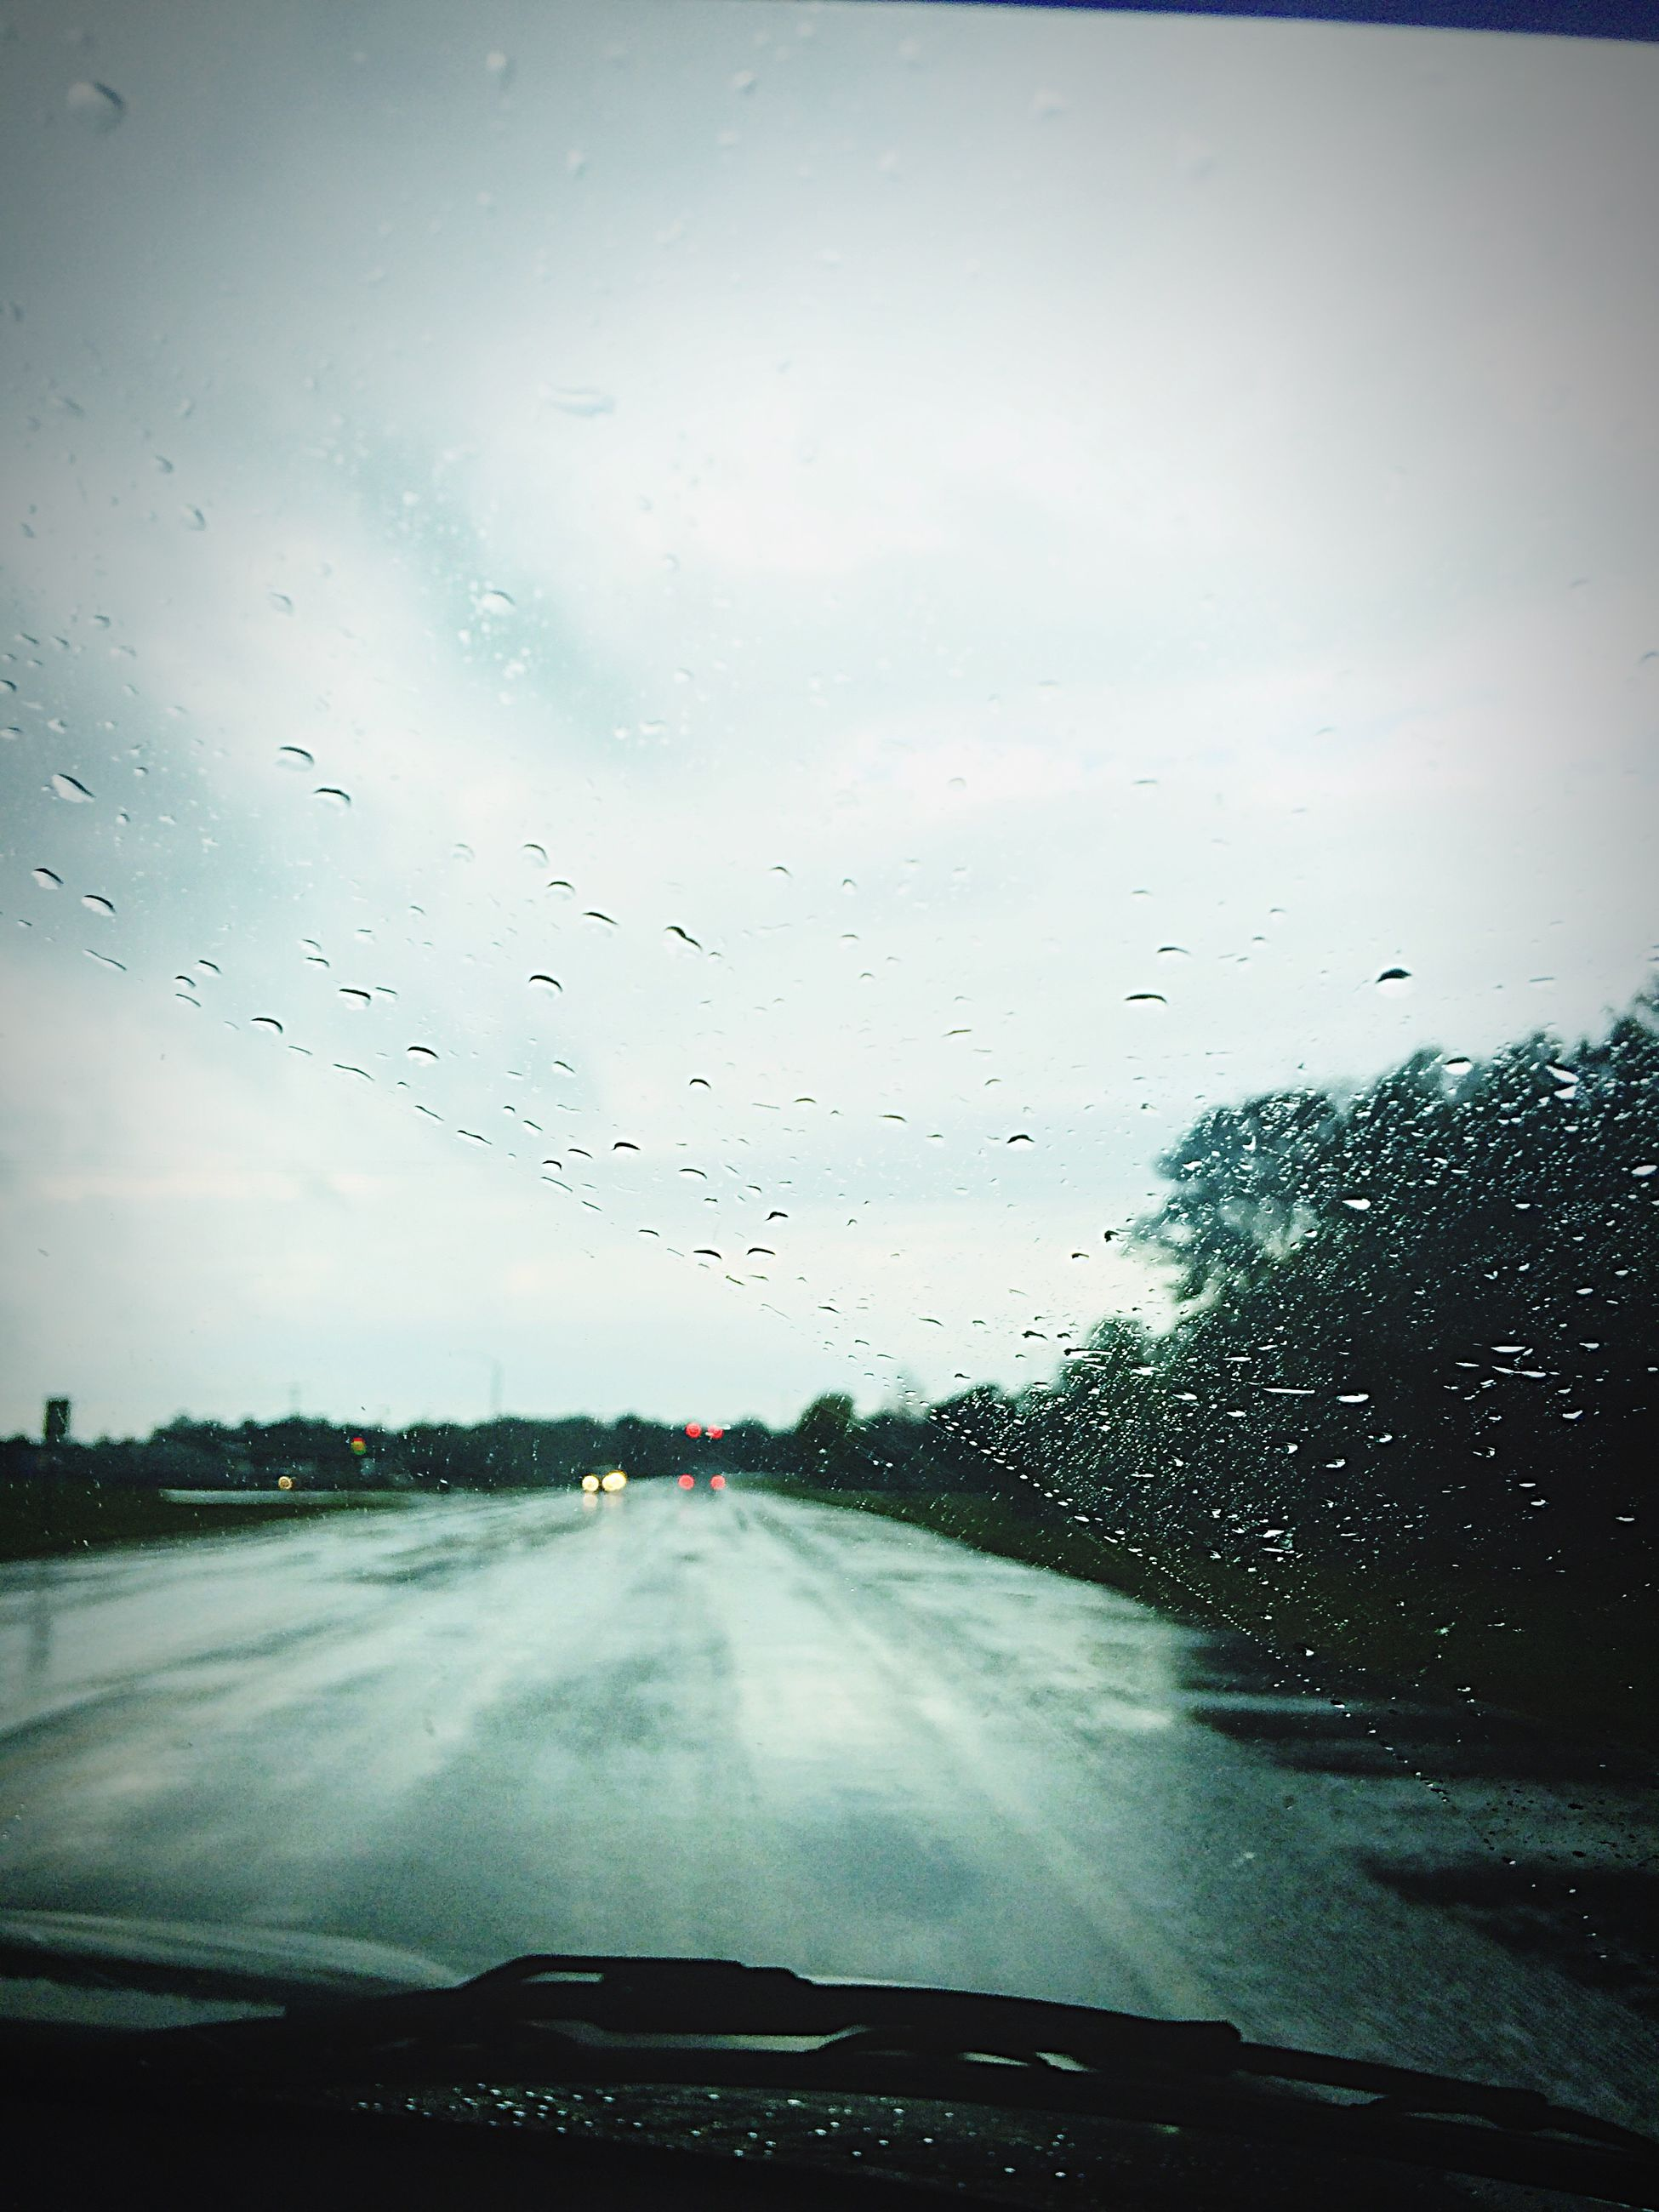 glass - material, windshield, car, wet, transparent, transportation, rain, window, vehicle interior, car point of view, drop, weather, car interior, no people, water, road, land vehicle, the way forward, nature, tree, sky, close-up, indoors, day